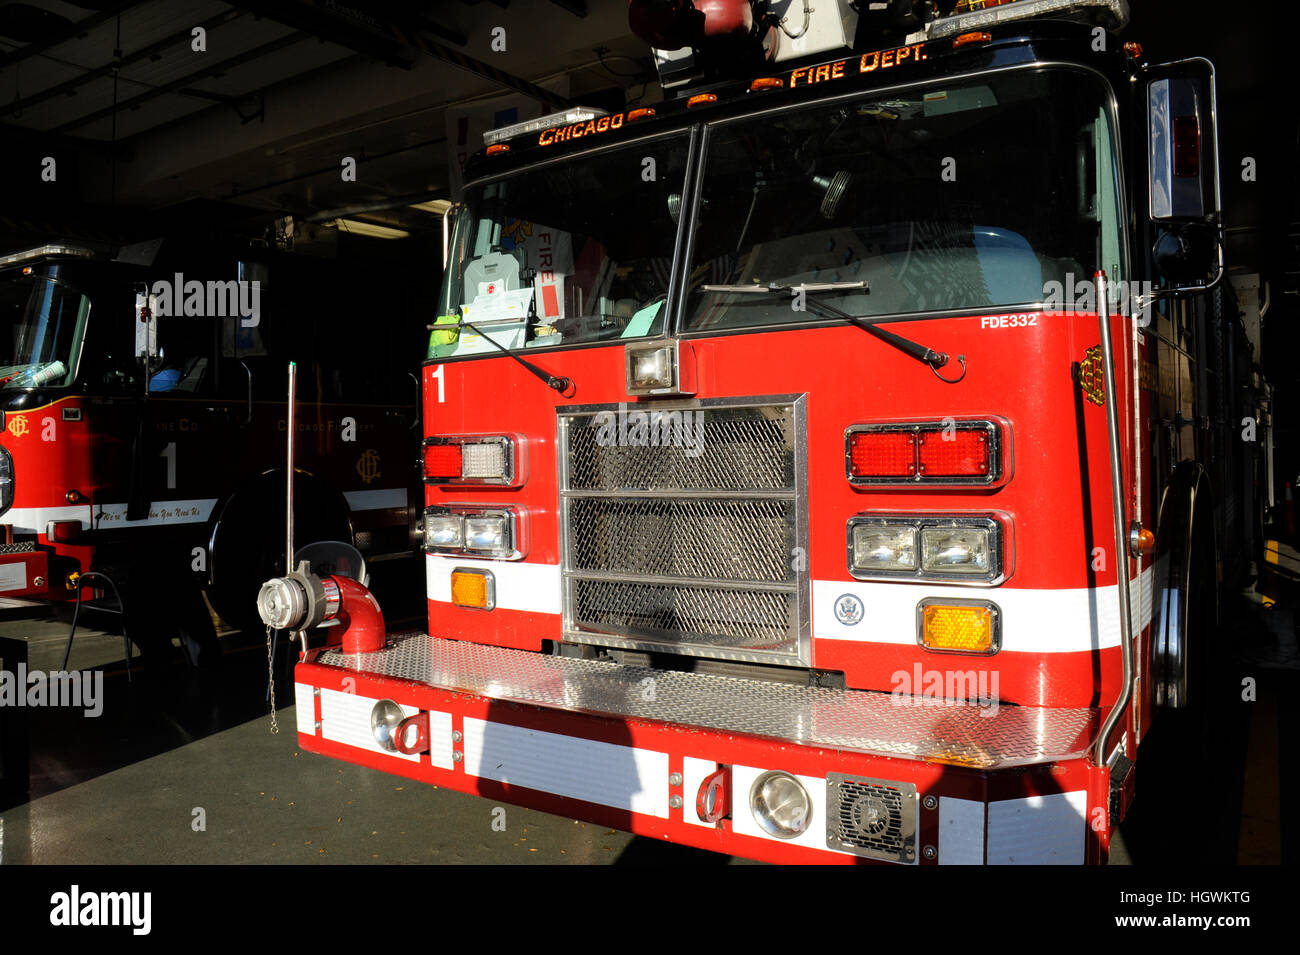 Chicago Fire Department, Chicago, Illinois - Stock Image